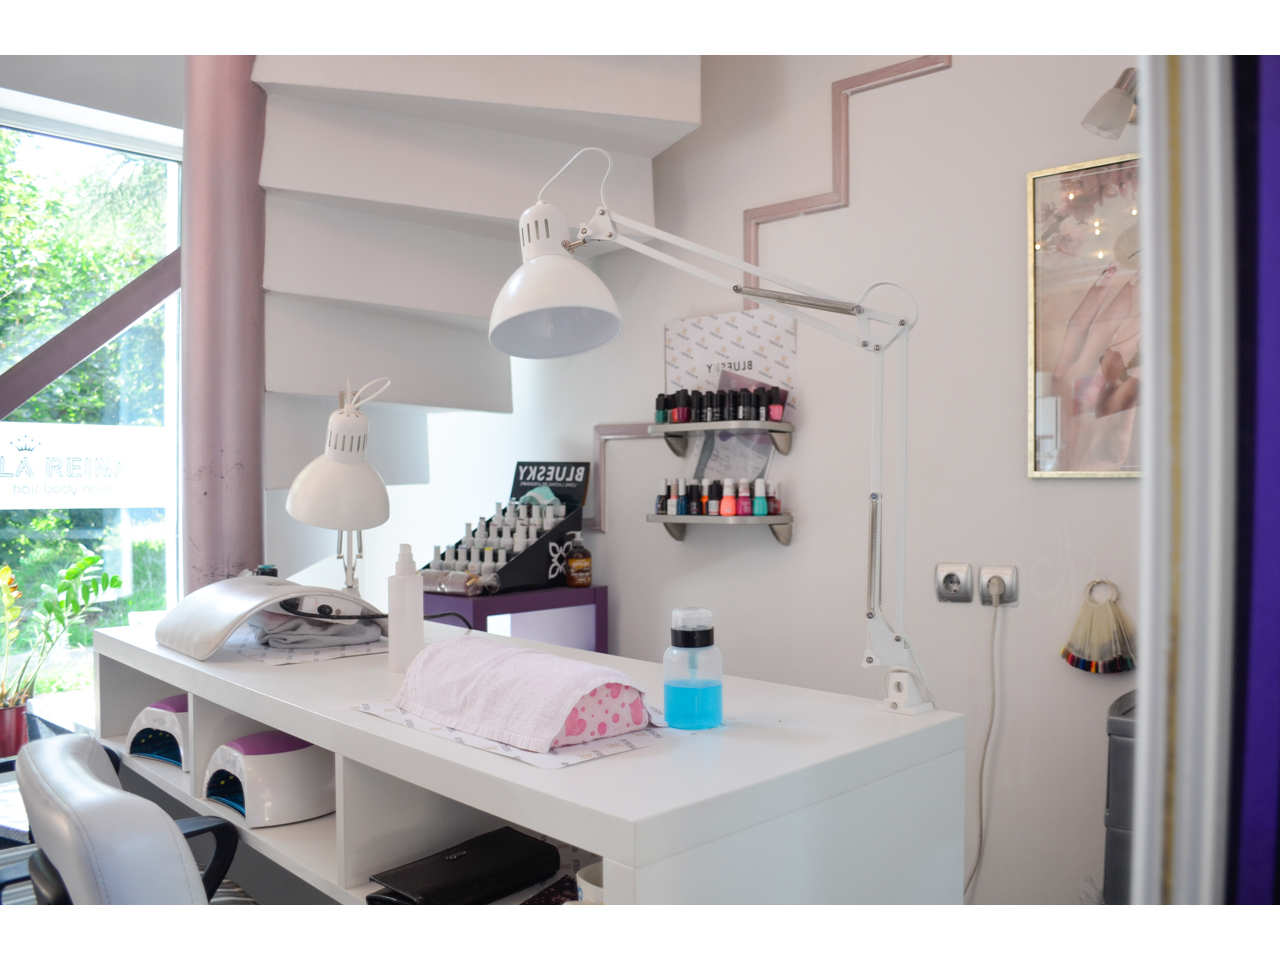 BEAUTY SALON LA REINA Manicures, pedicurists Beograd